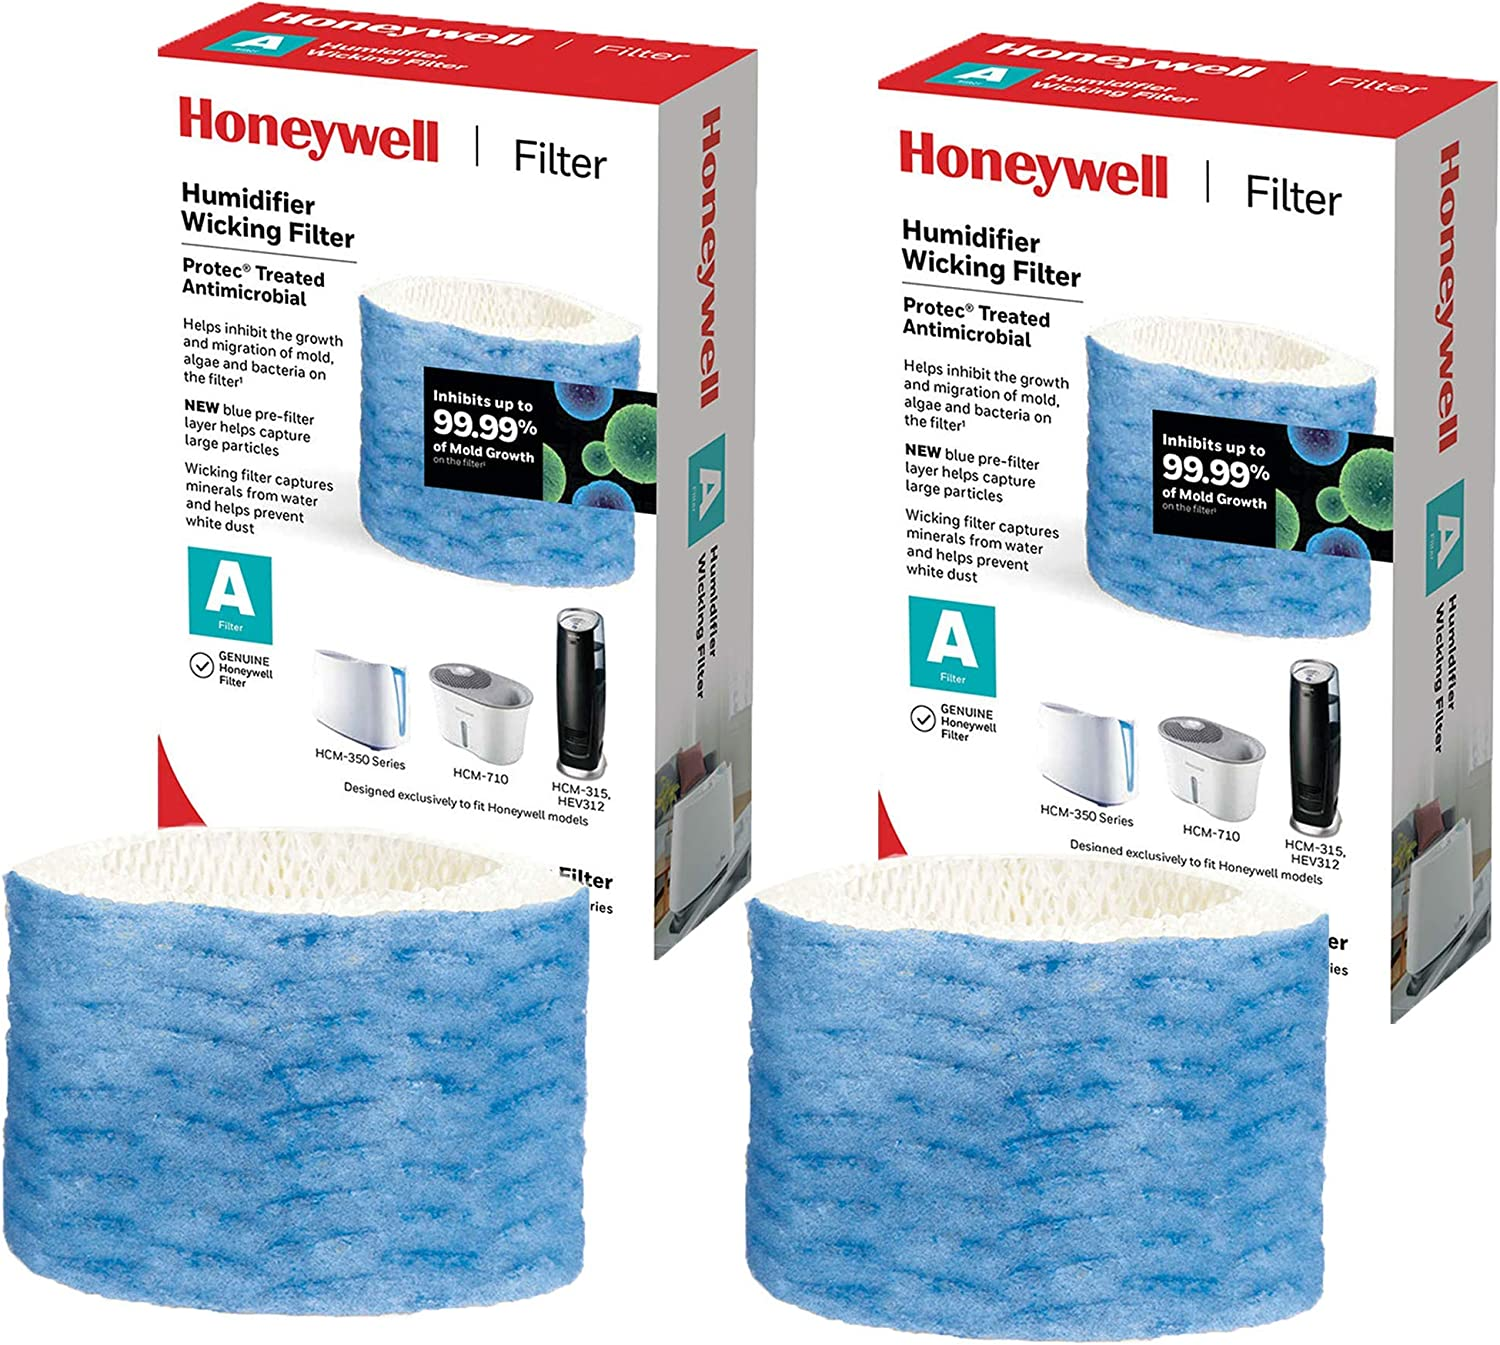 Honeywell HAC-504 Series Humidifier Replacement, Filter A - 2 Filters (Updated Version) Bundled with.